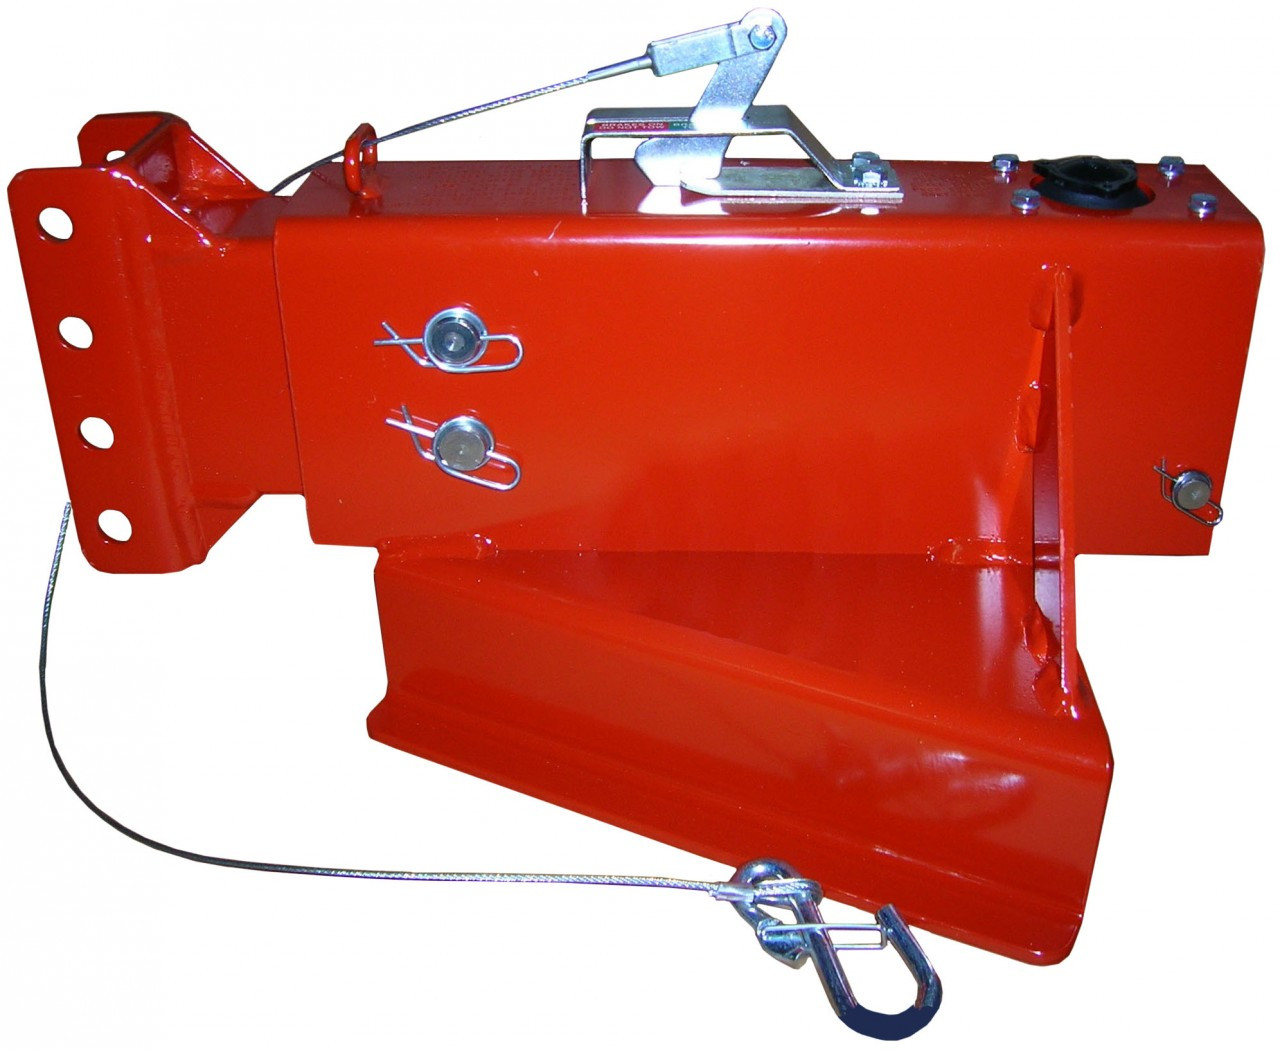 DA20AF --- Demco Hydraulic Brake A-Frame Actuator with Centered Channel - 20,000 lb Capacity - Model DA20